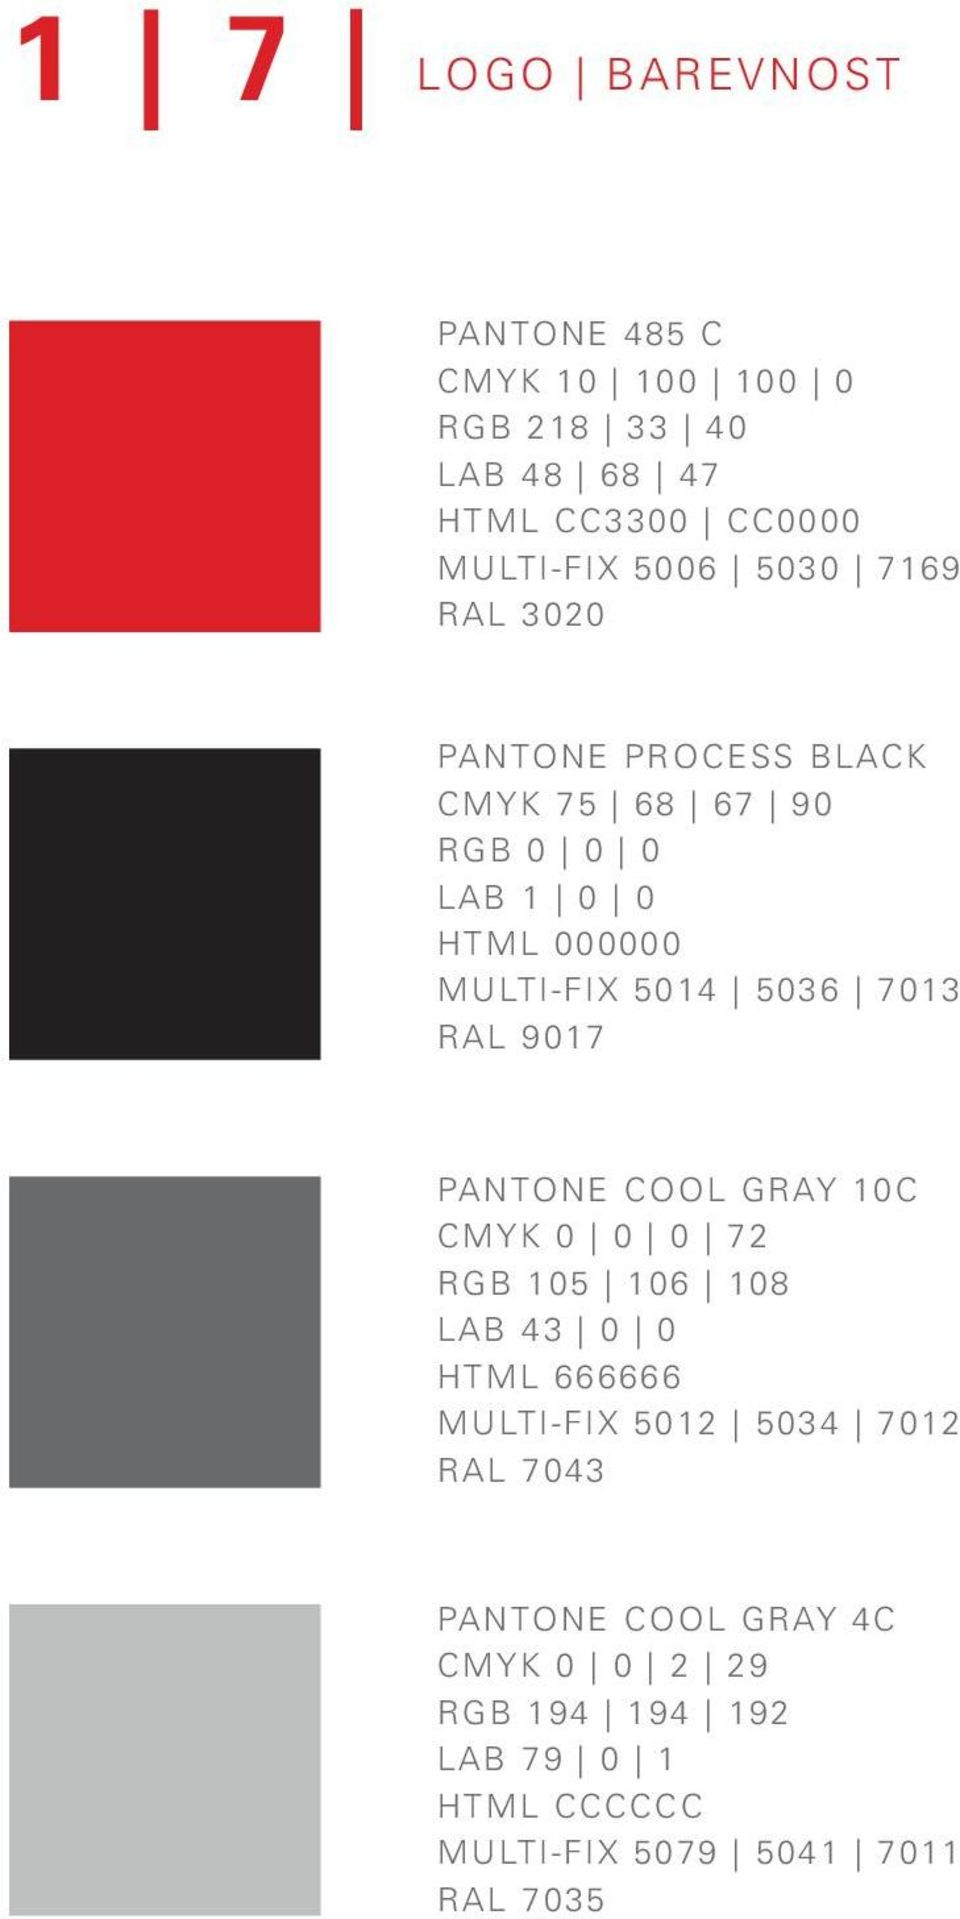 7013 RAL 9017 PANTONE COOL GRAY 10C CMYK 0 0 0 72 RGB 105 106 108 LAB 43 0 0 HTML 666666 MULTI-FIX 5012 5034